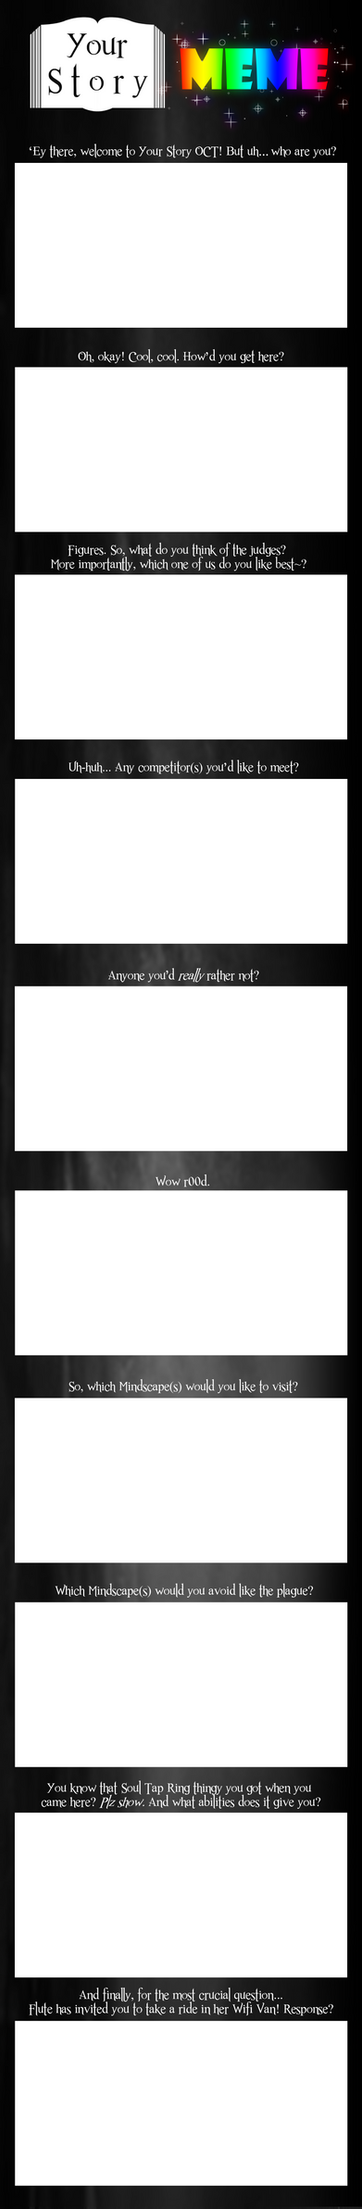 Your Story OCT - Meme Template by Big-Bad-Wolfe